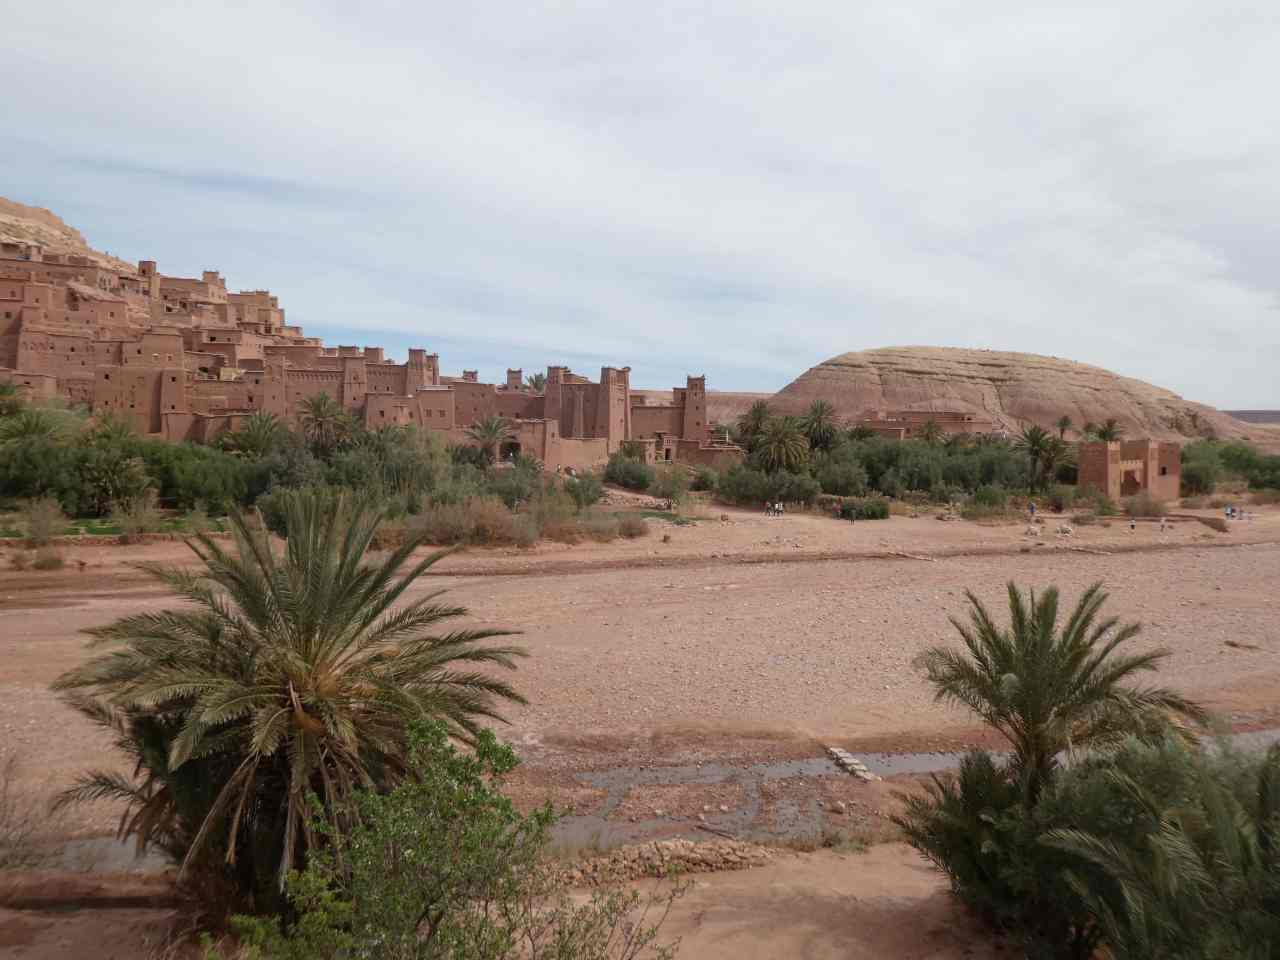 First view of Ait Benhaddou